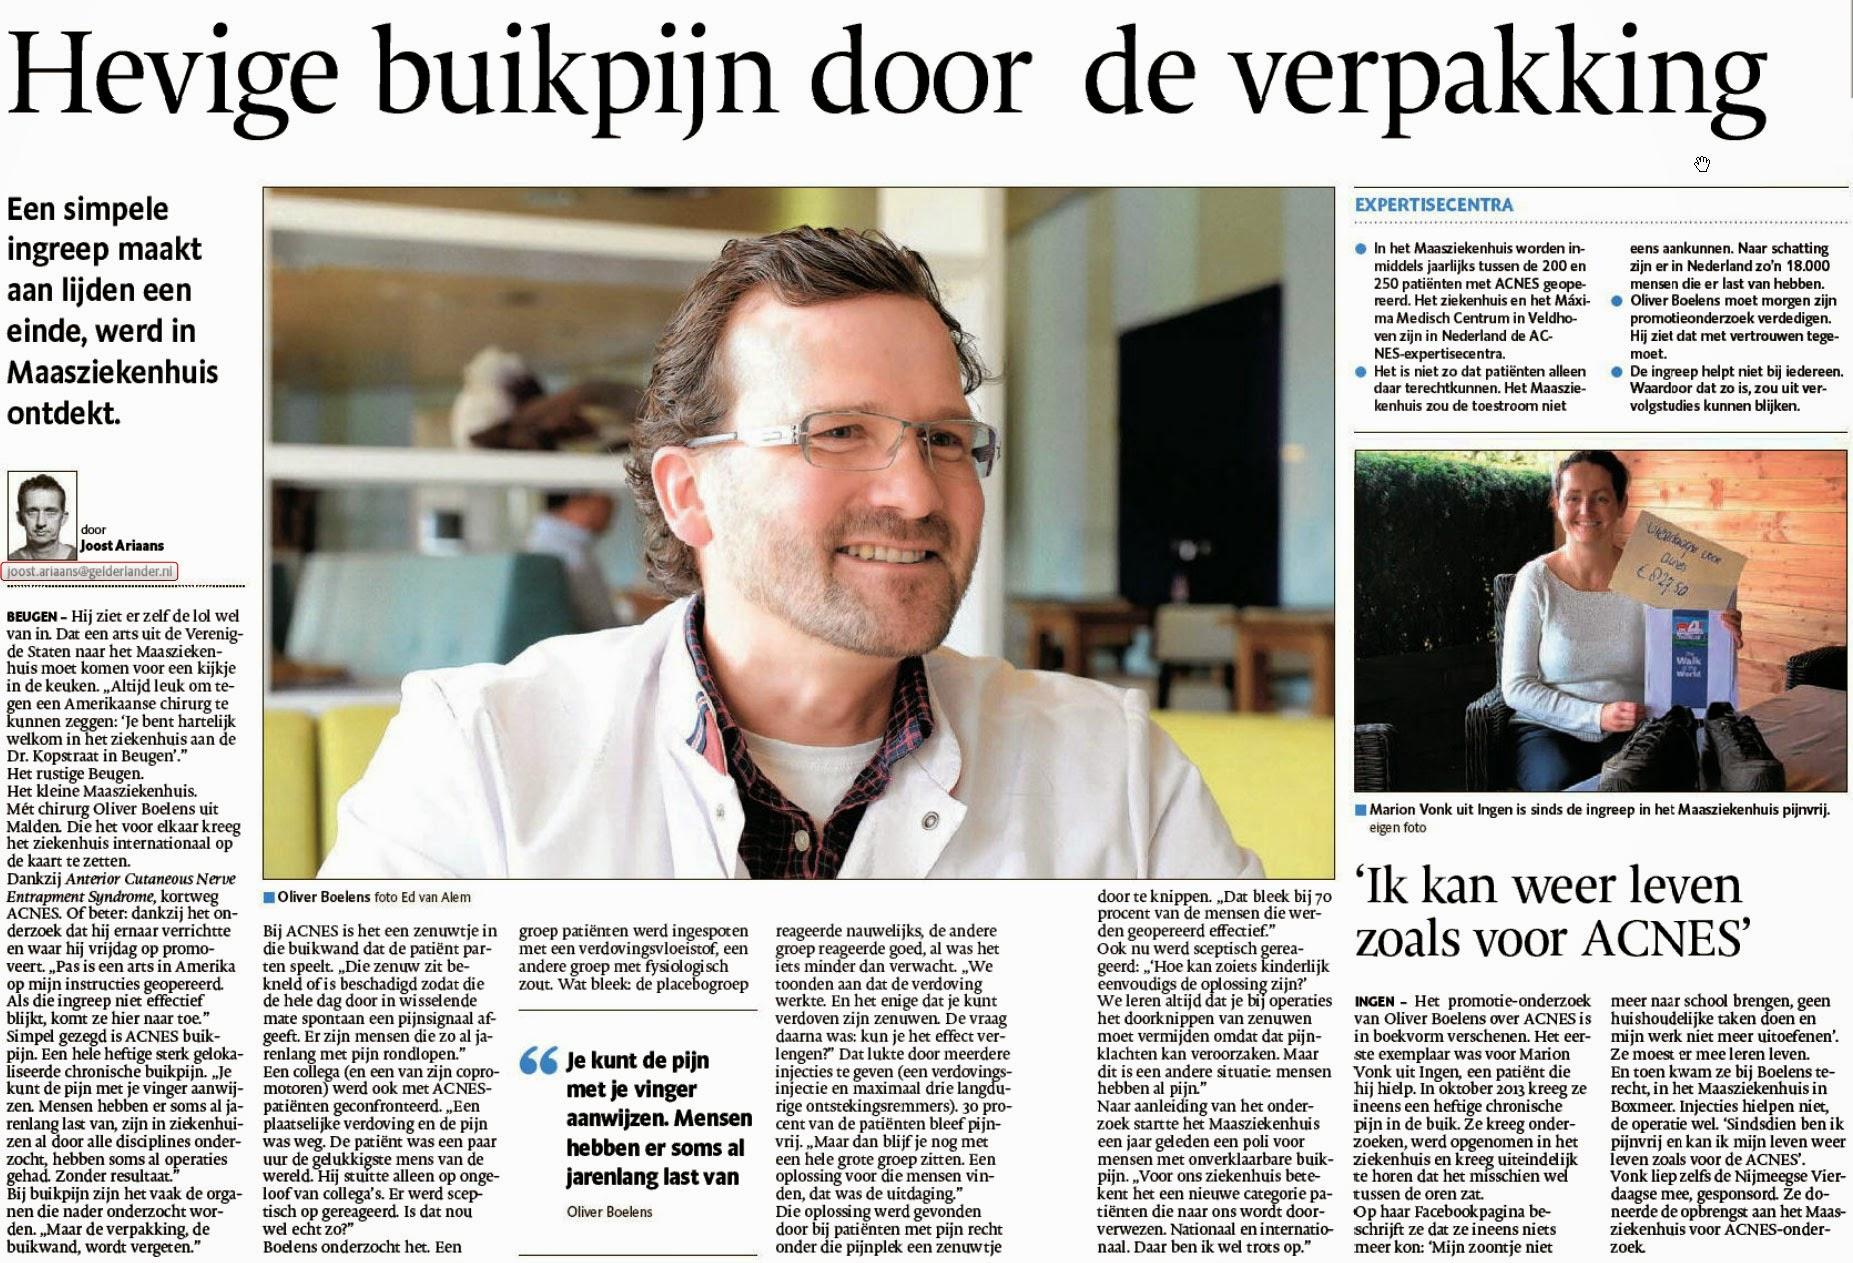 Interview in De Gelderlander met Olivier Boelens